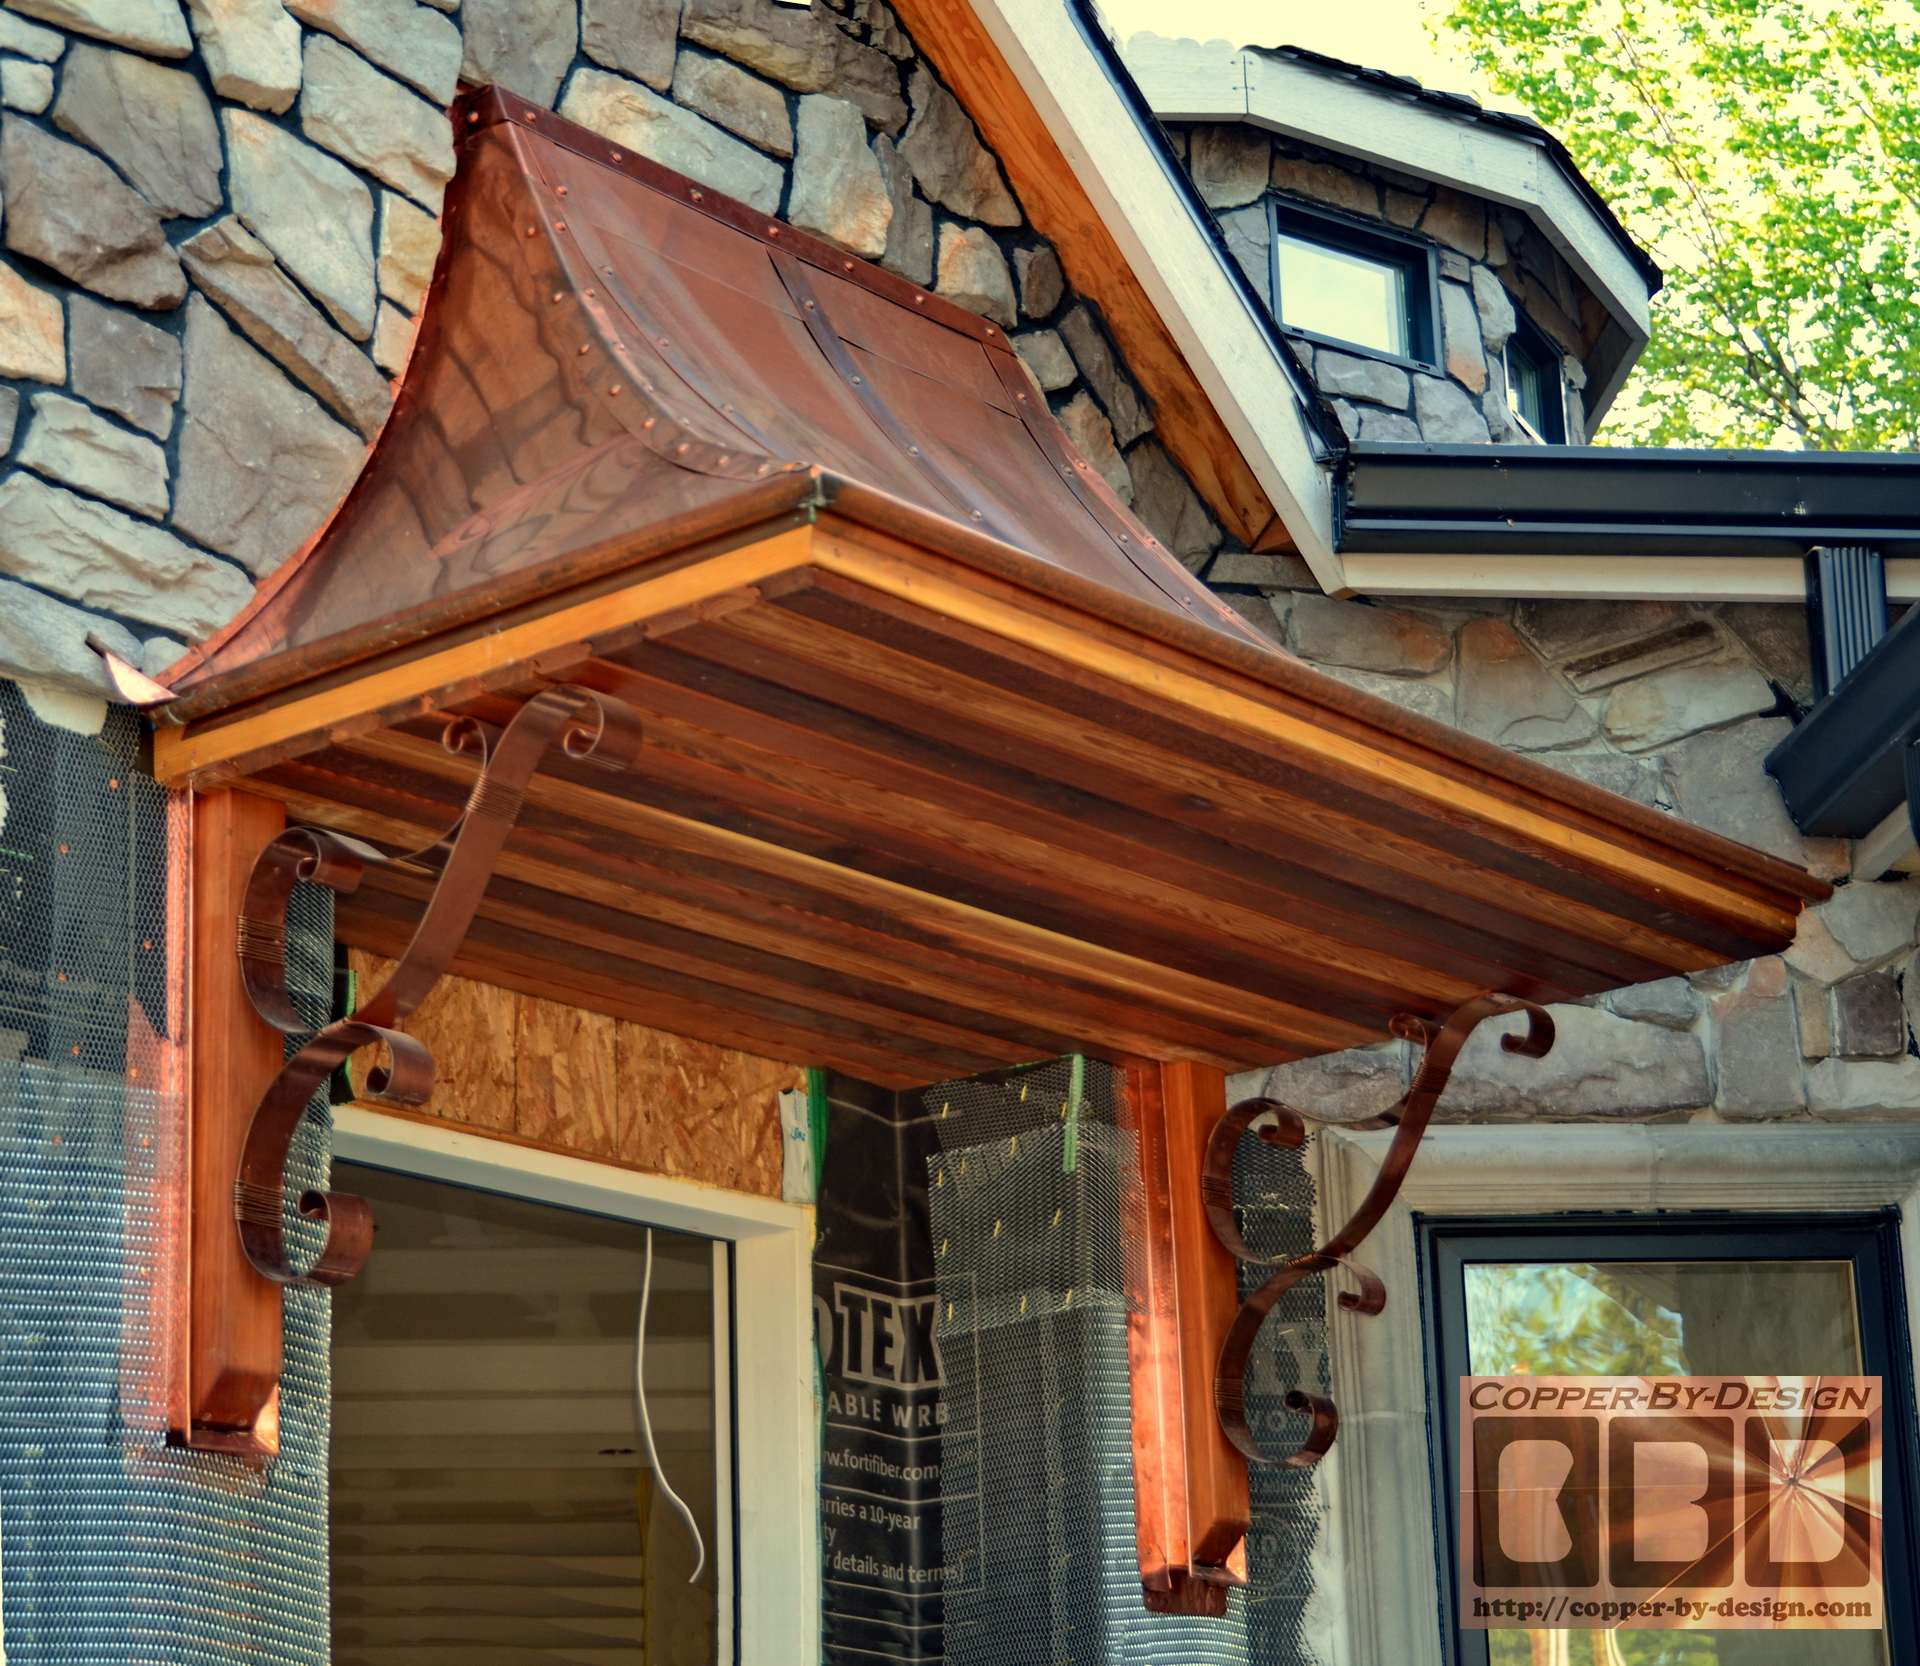 Cbd S Custom Copper Roof Covering Pages